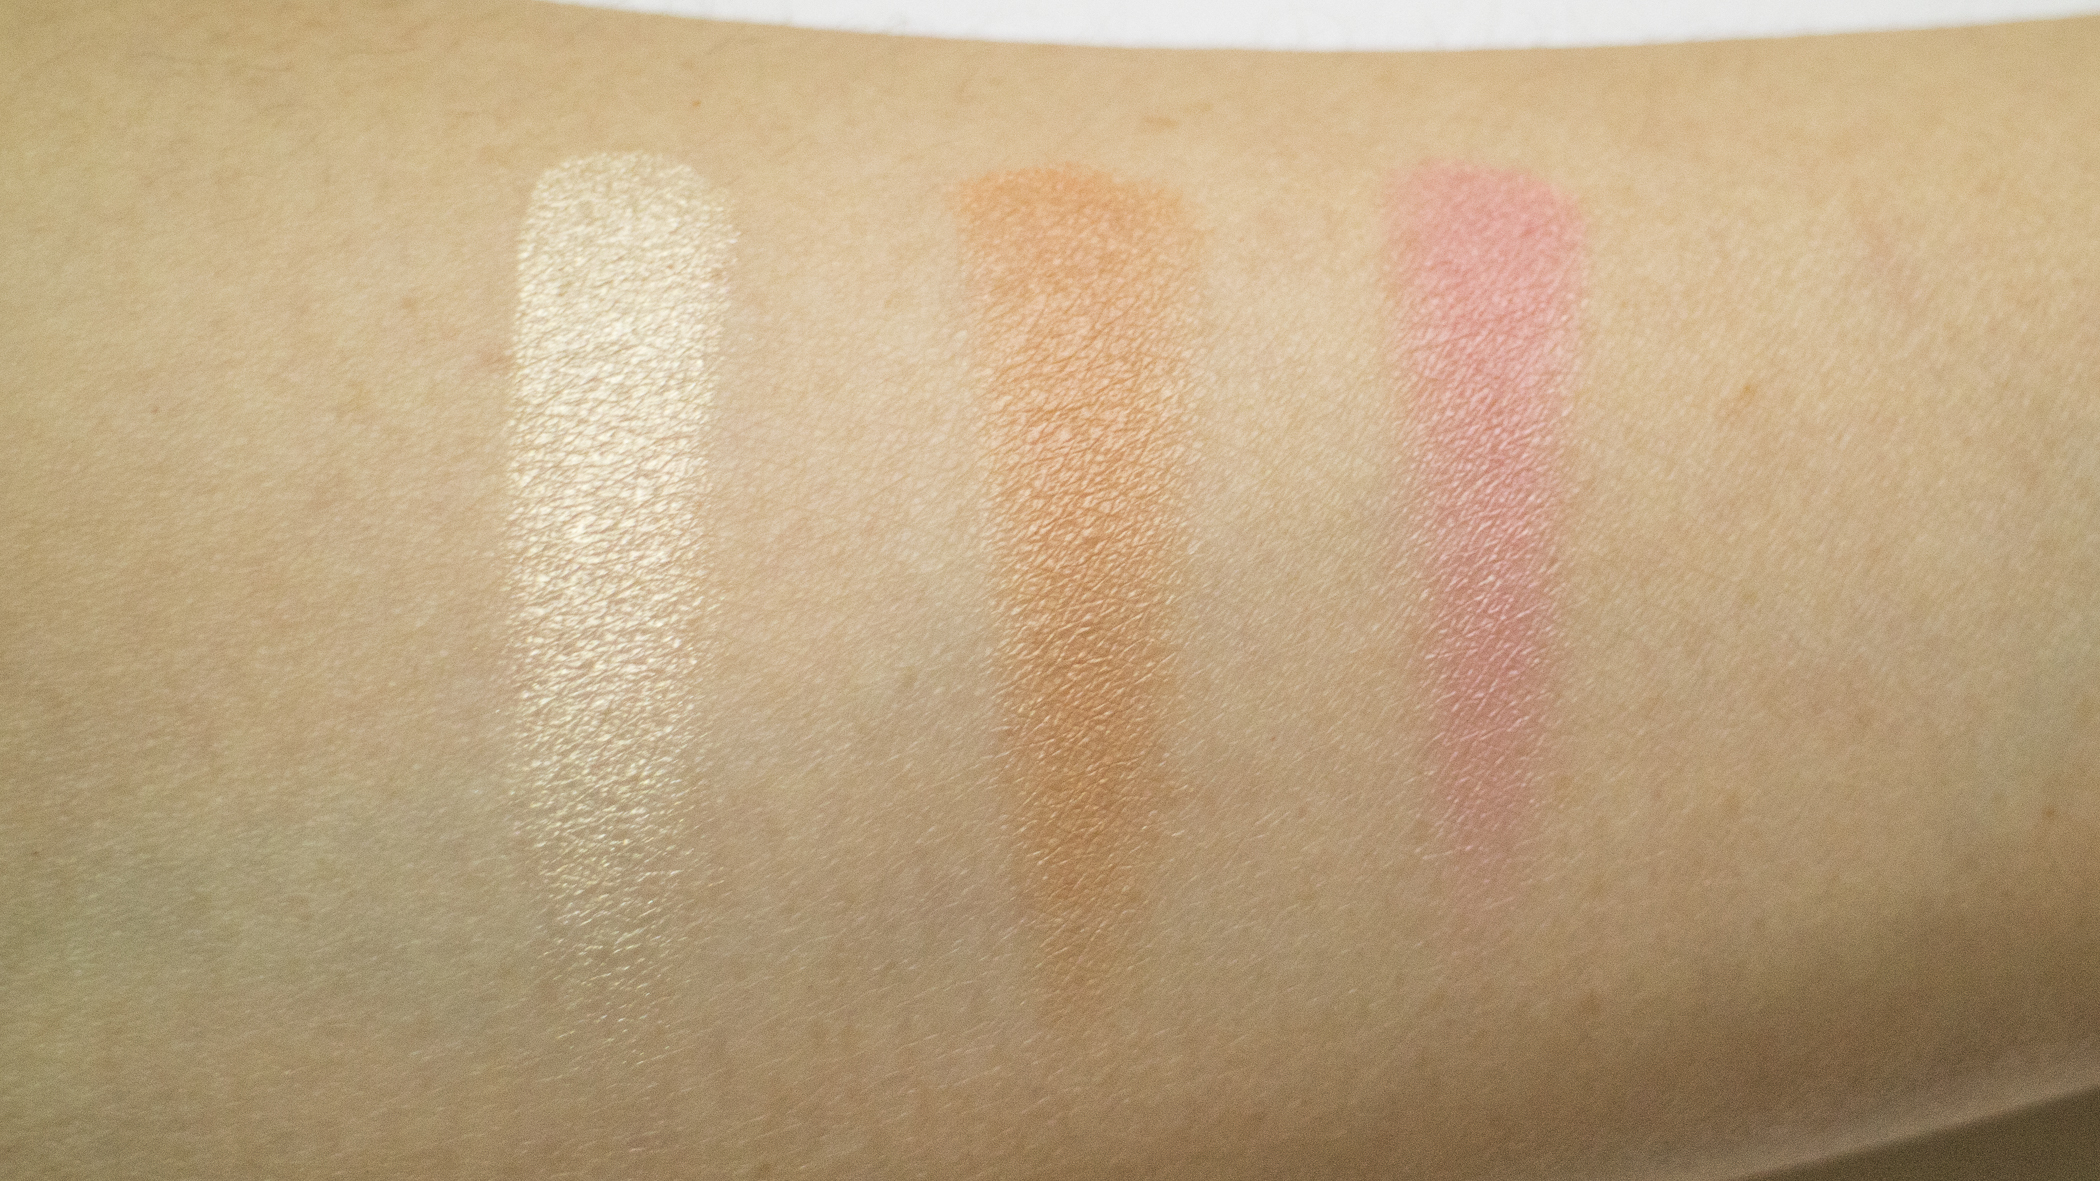 Blushes swatched onto bare arm with brush.